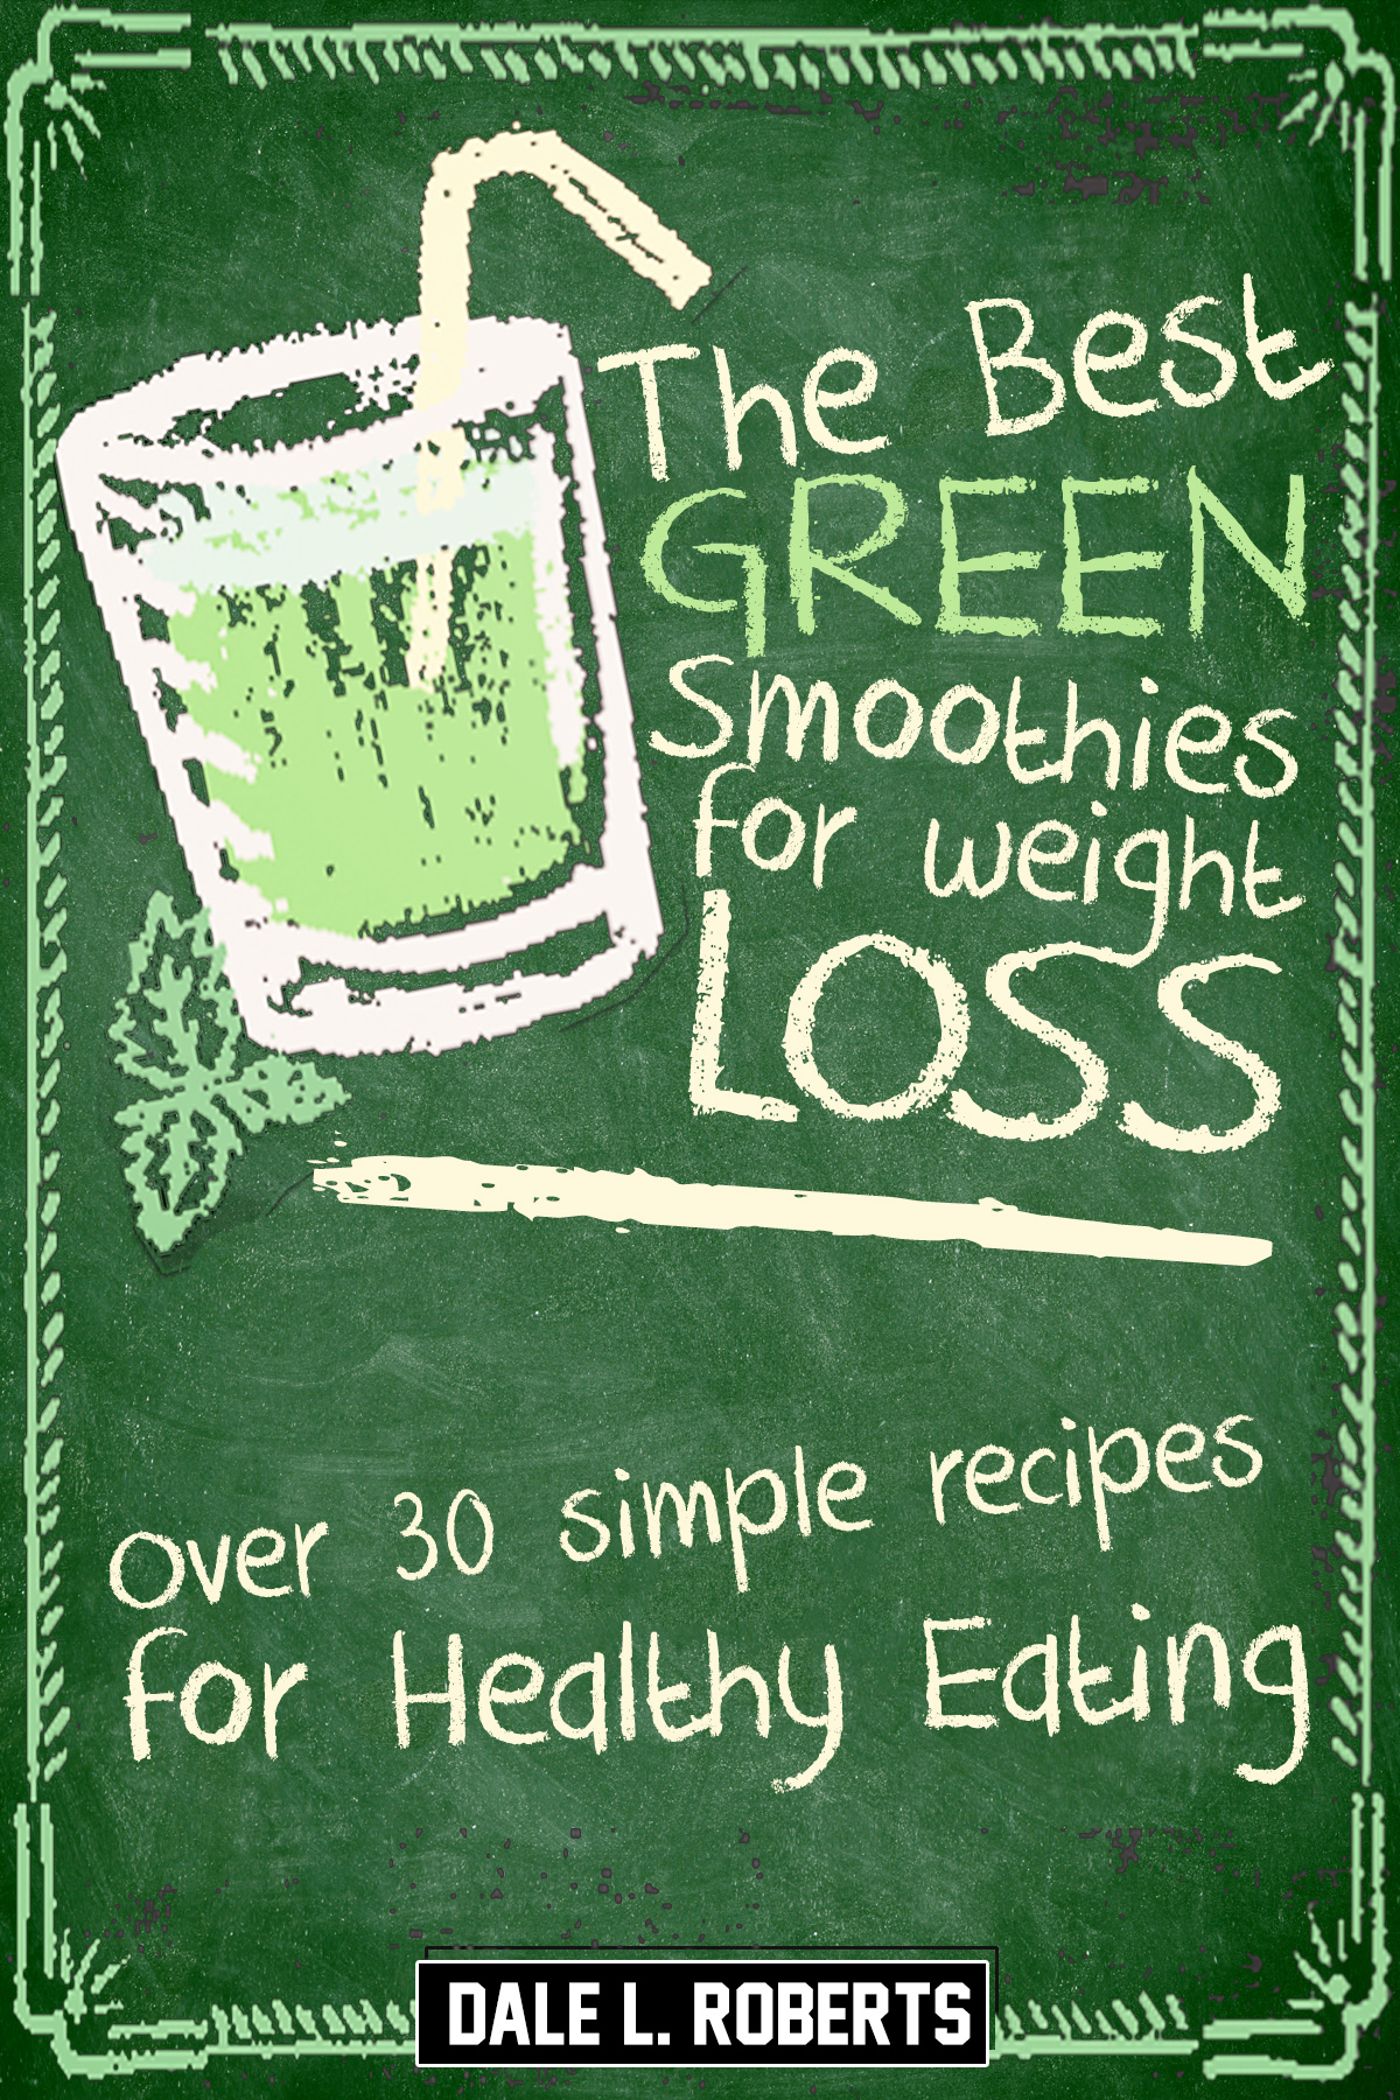 The Best Green Smoothies For Weight Loss Over 30 Simple Recipes For Healthy Eating An Ebook By Dale L Roberts